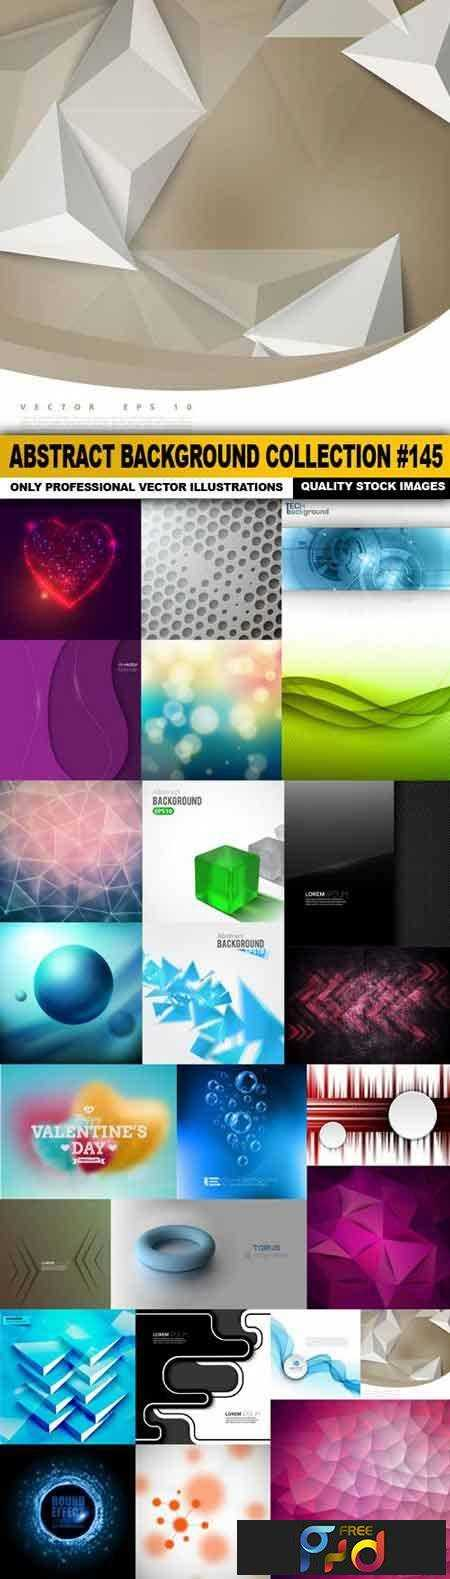 FreePsdVn.com_VECTOR_1701370_abstract_background_collection_145_25_vector